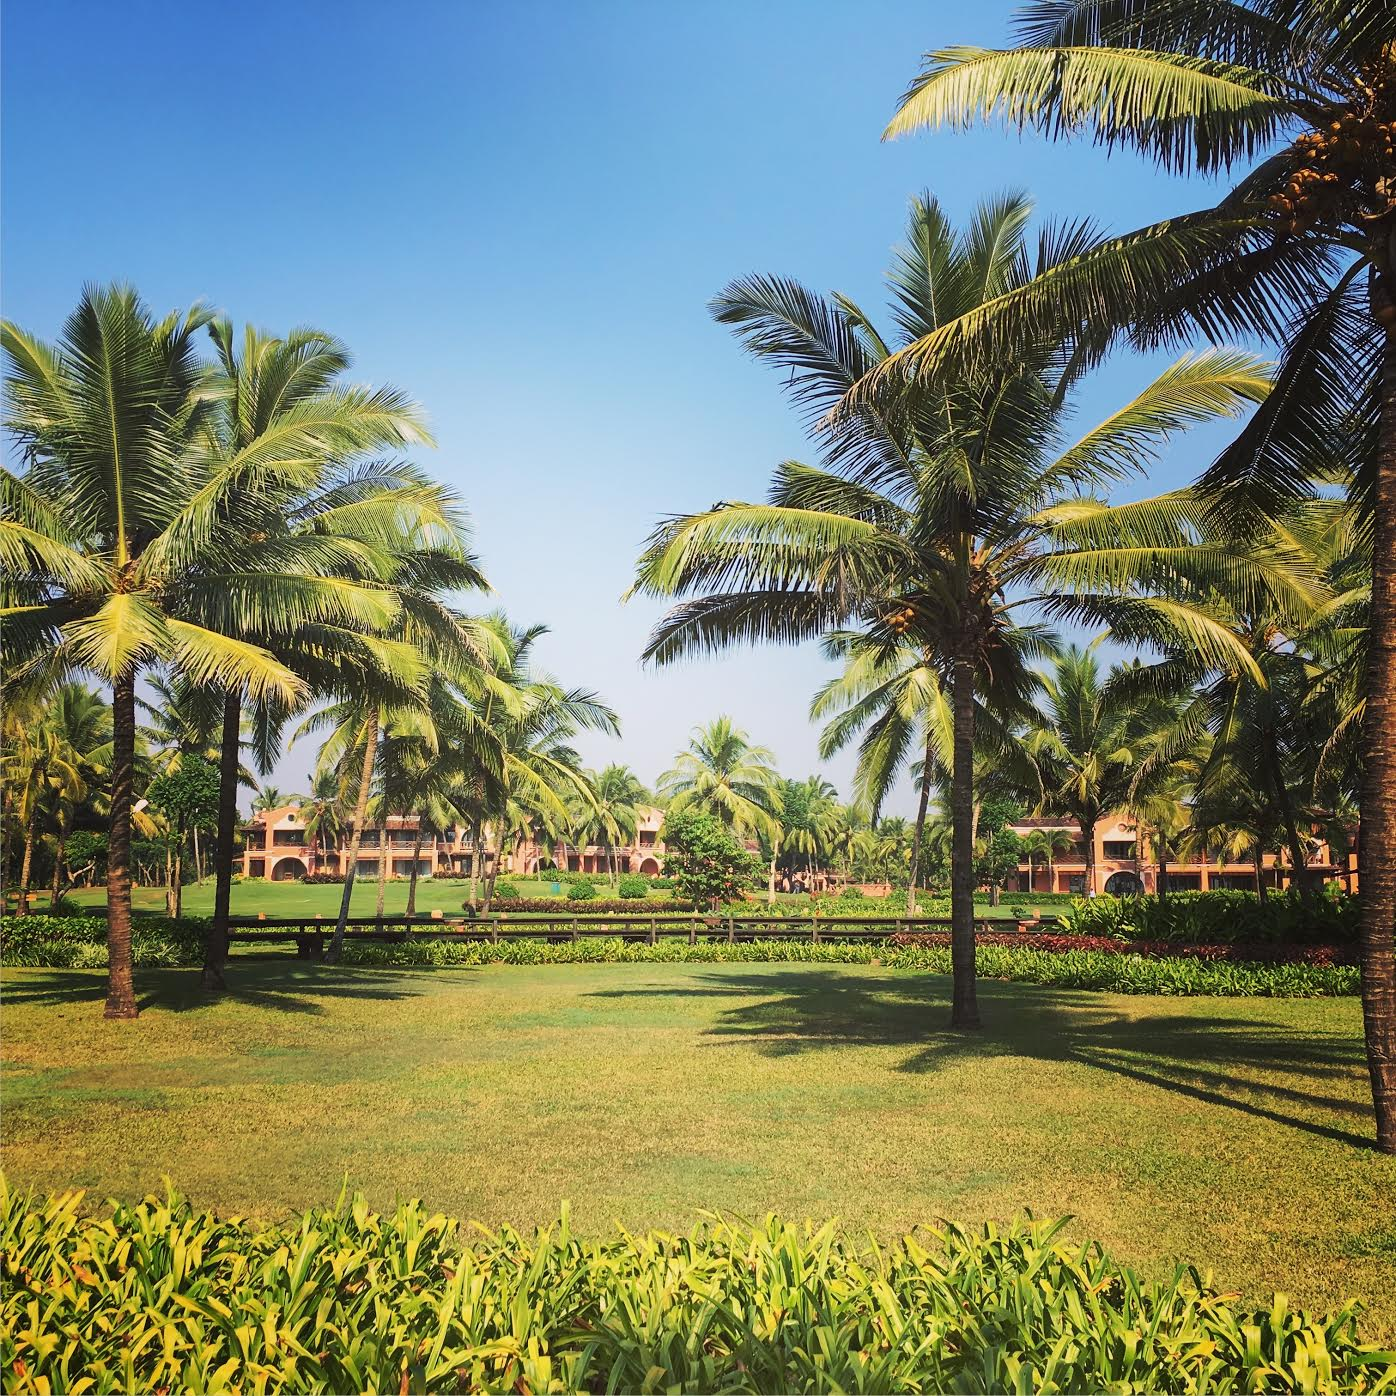 Park Hyatt - Goa, booked on points!